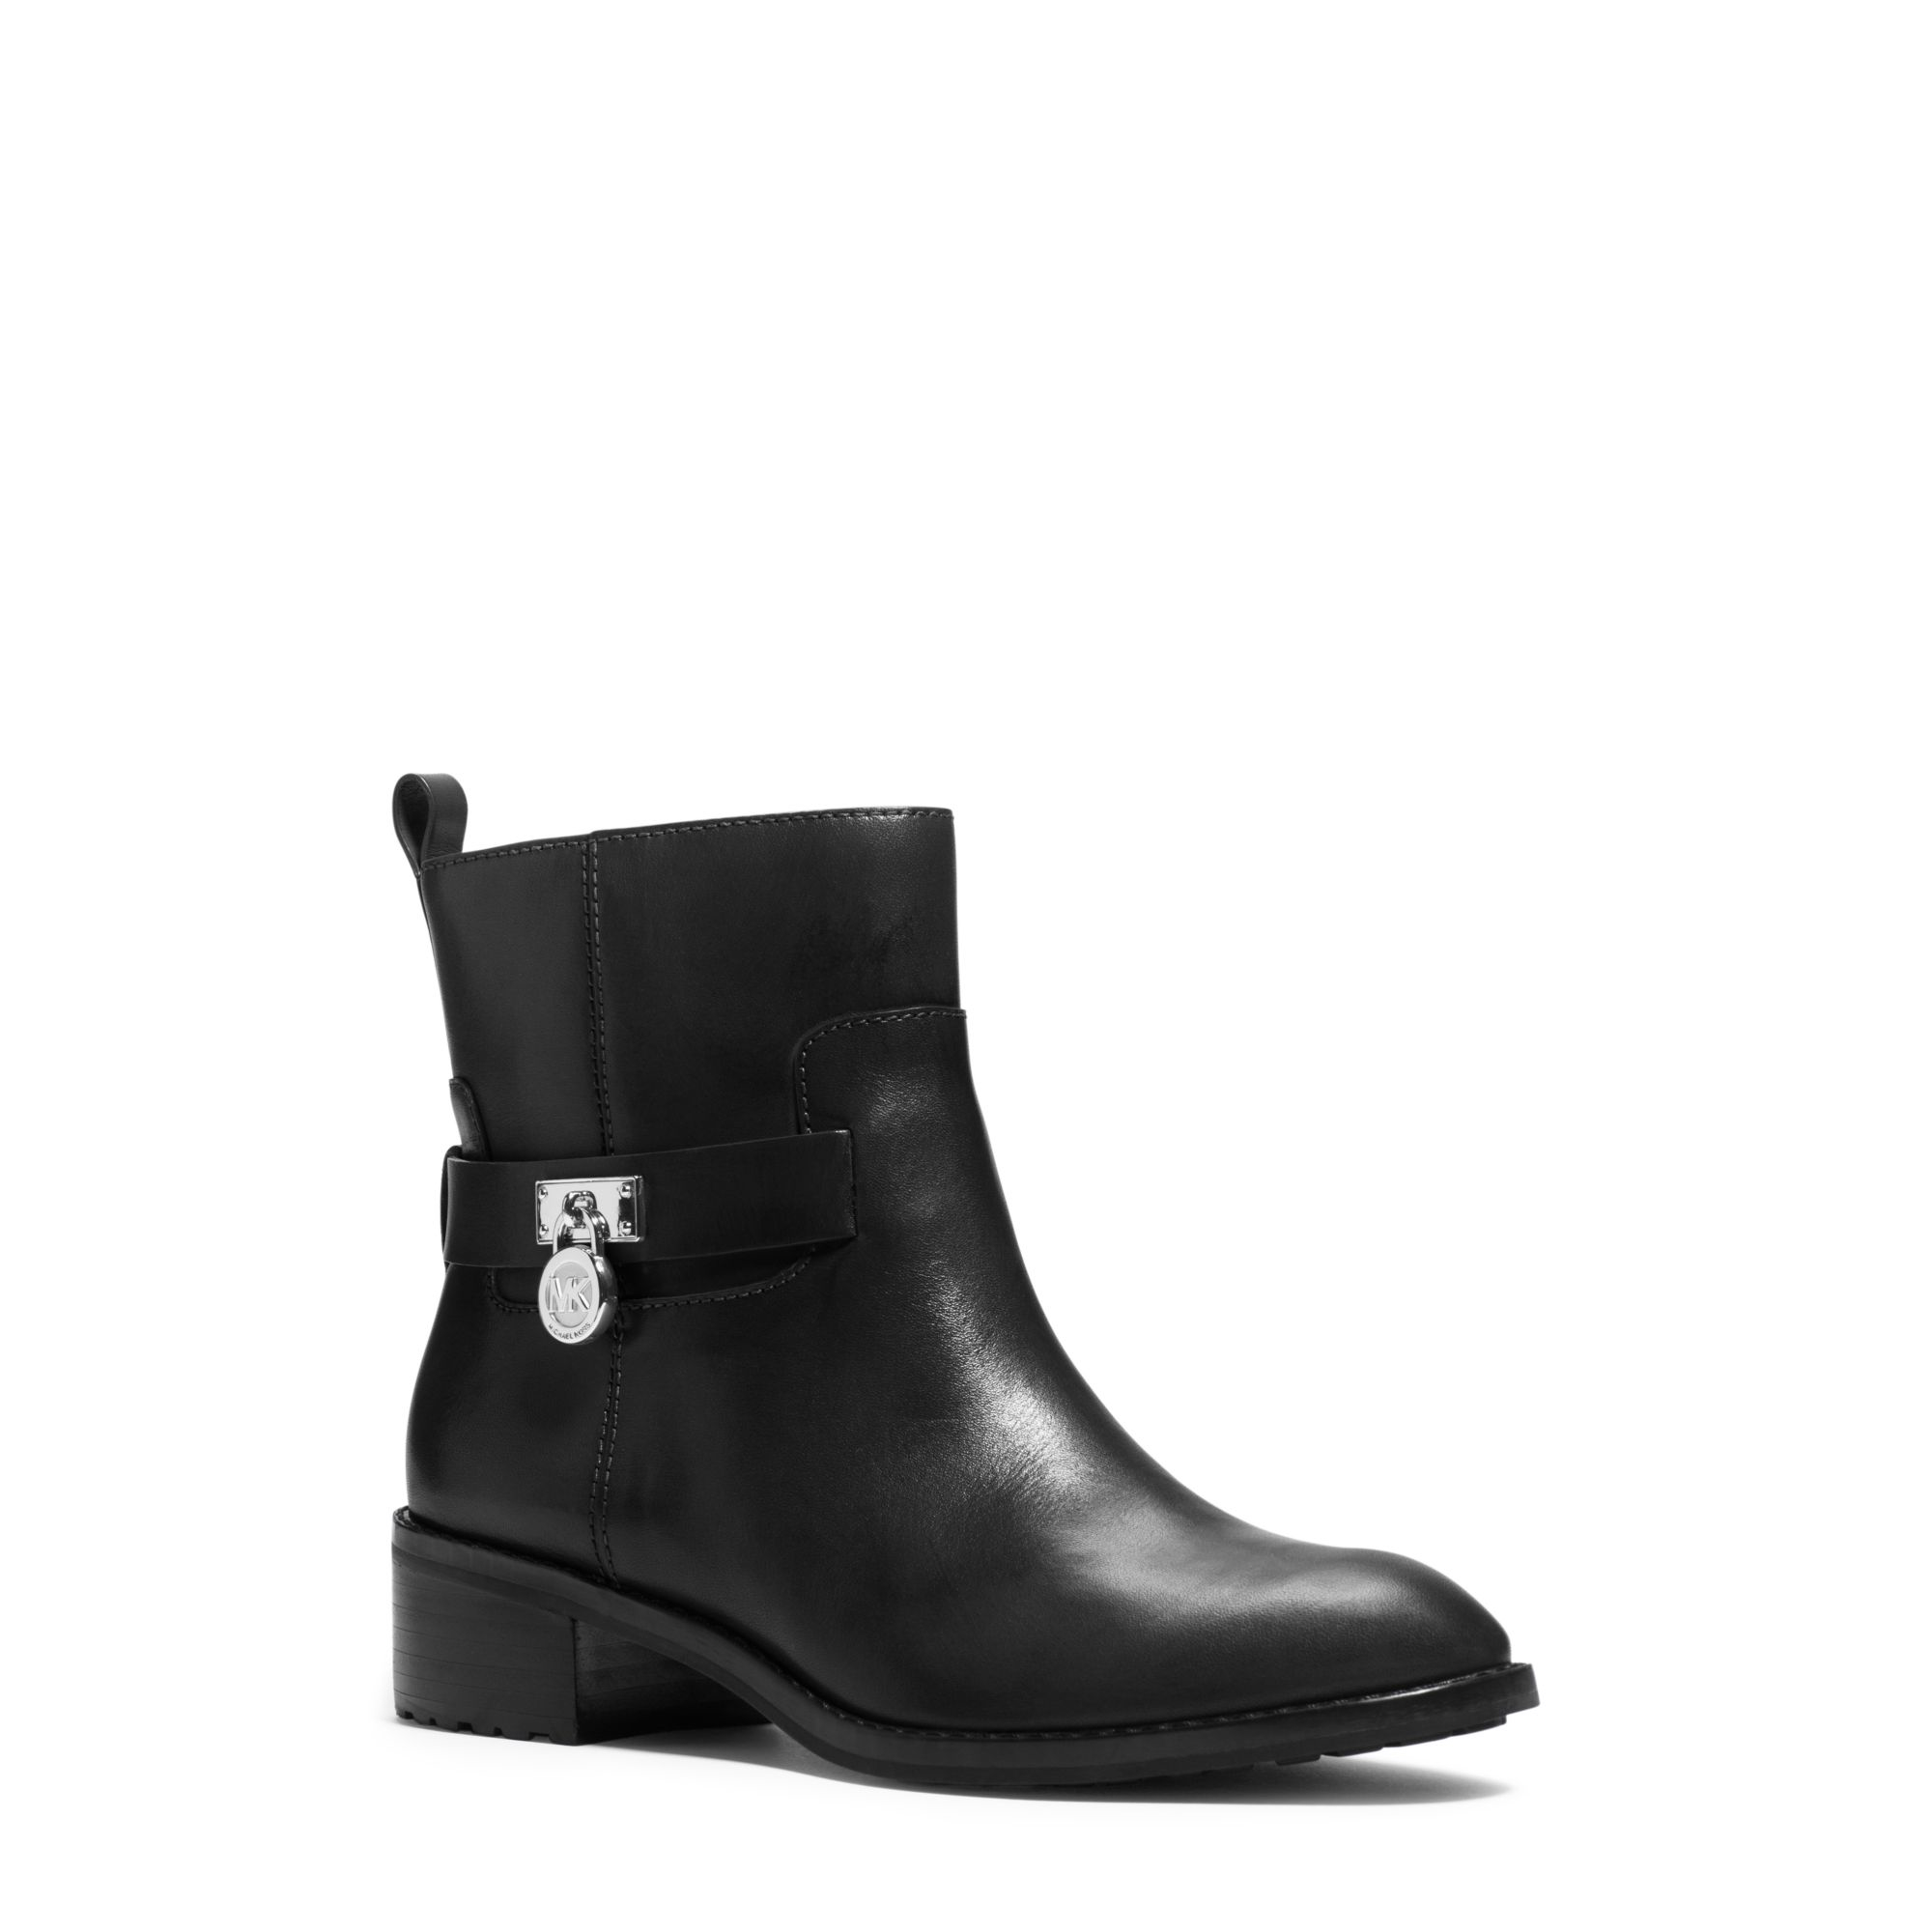 Michael kors Ryan Leather Ankle Boot in Black | Lyst